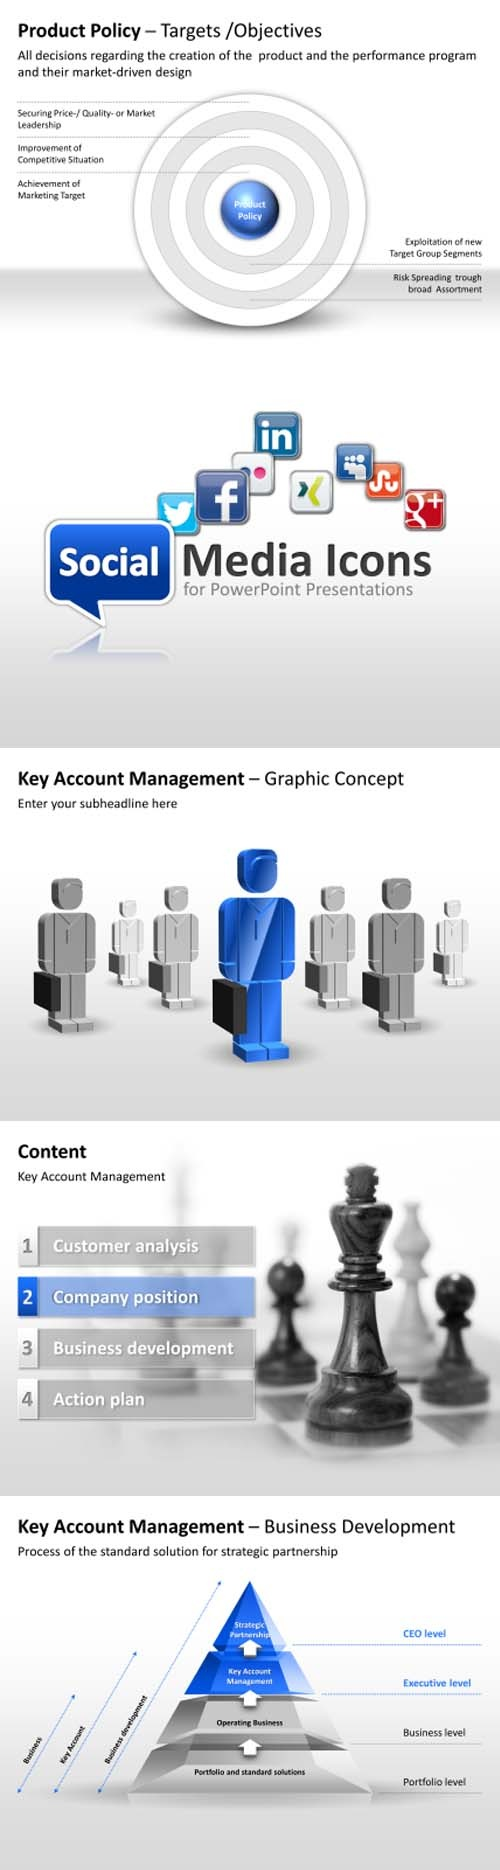 Professional #PowerPoint templates for #marketing and key account in #business presentations